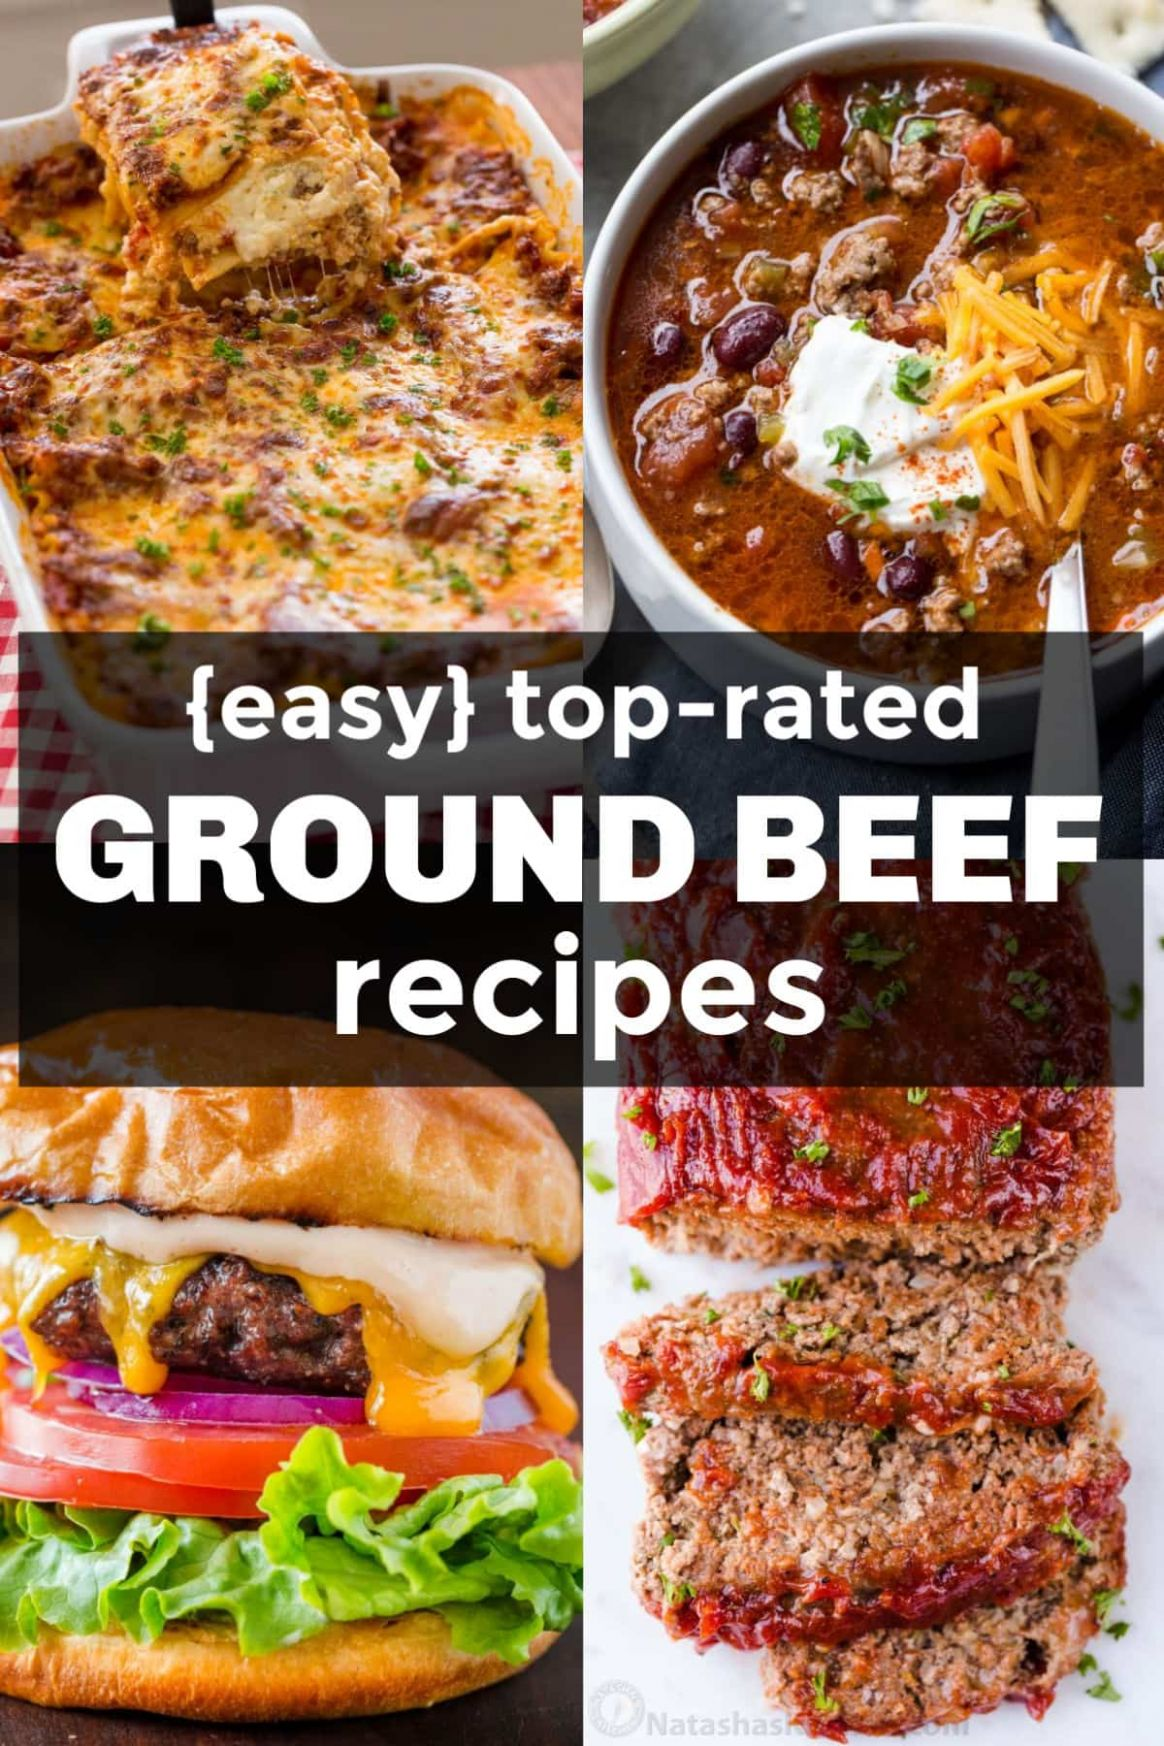 How to Cook Ground Beef for Ground Beef Recipes - Beef Recipes Easy To Cook